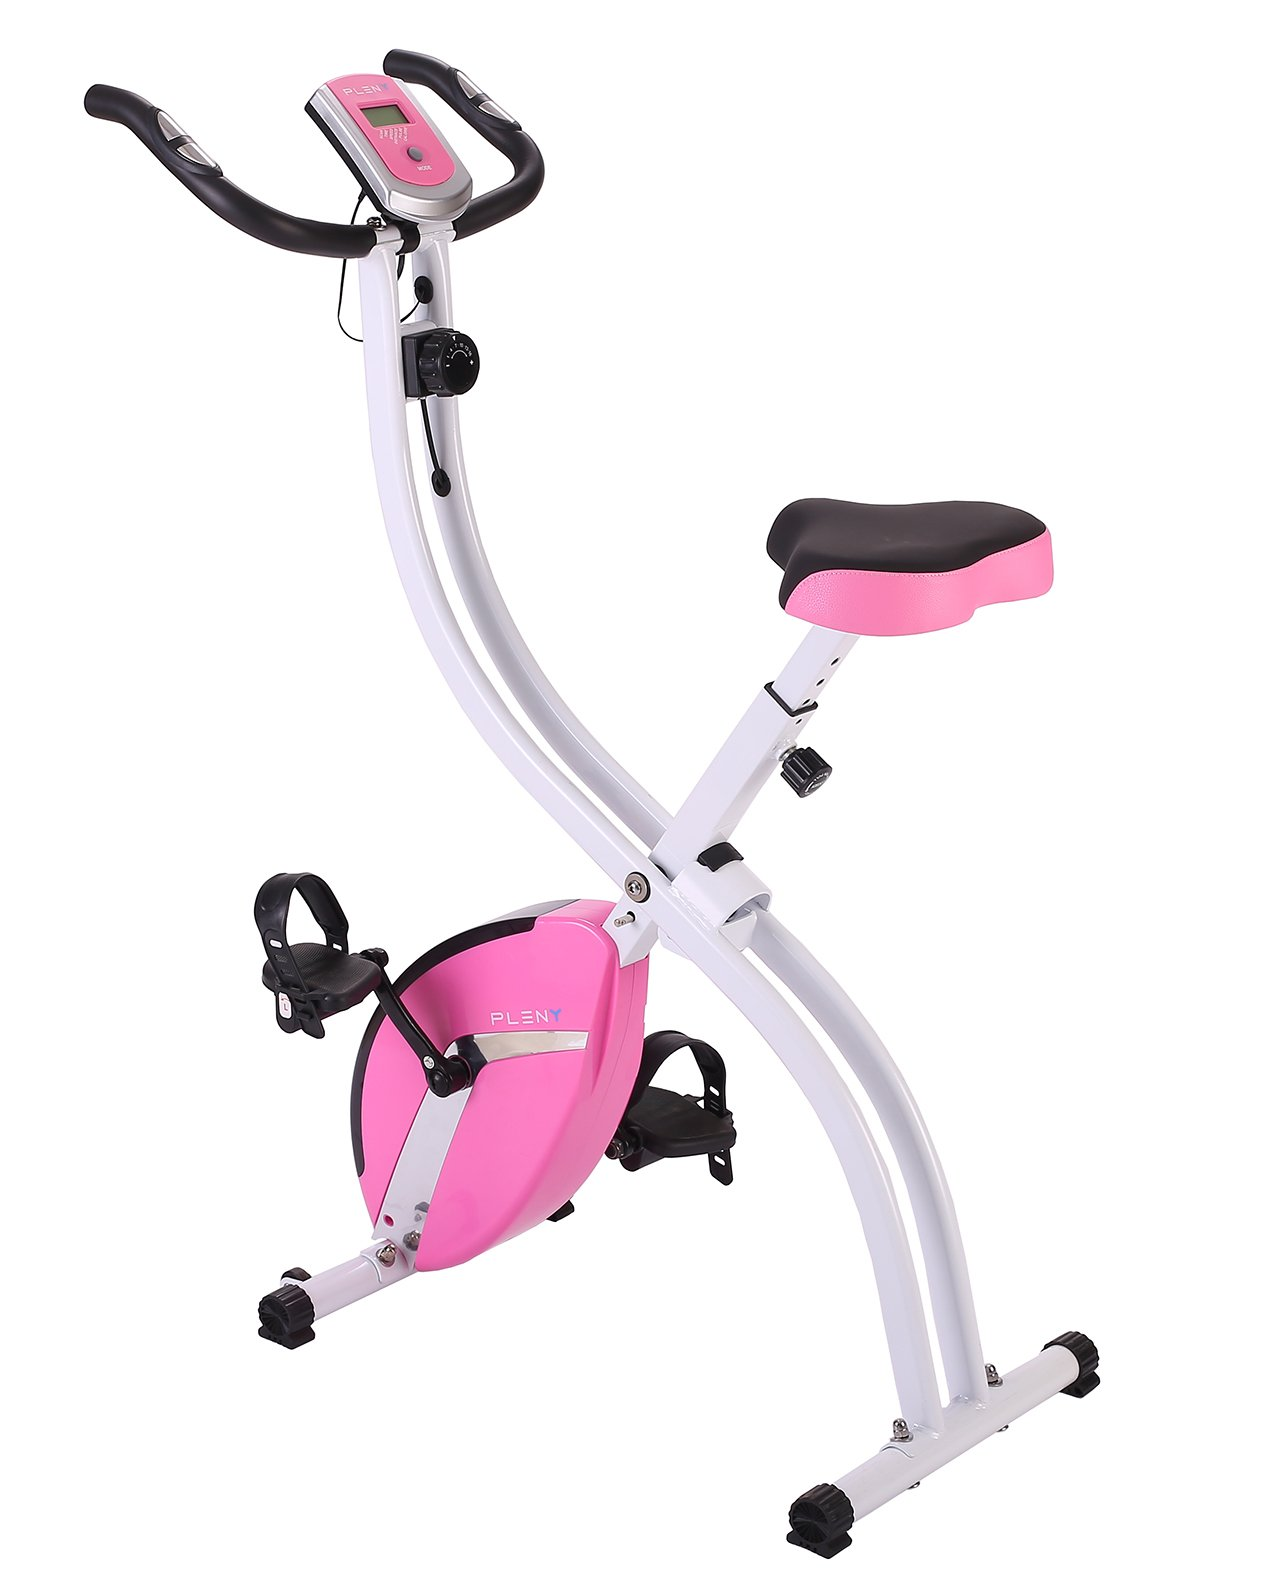 PLENY Foldable Upright Stationary Exercise Bike with 16 Level Resistance, New Exercise Monitor with Phone/Tablet Holder (Pink) by PLENY (Image #2)